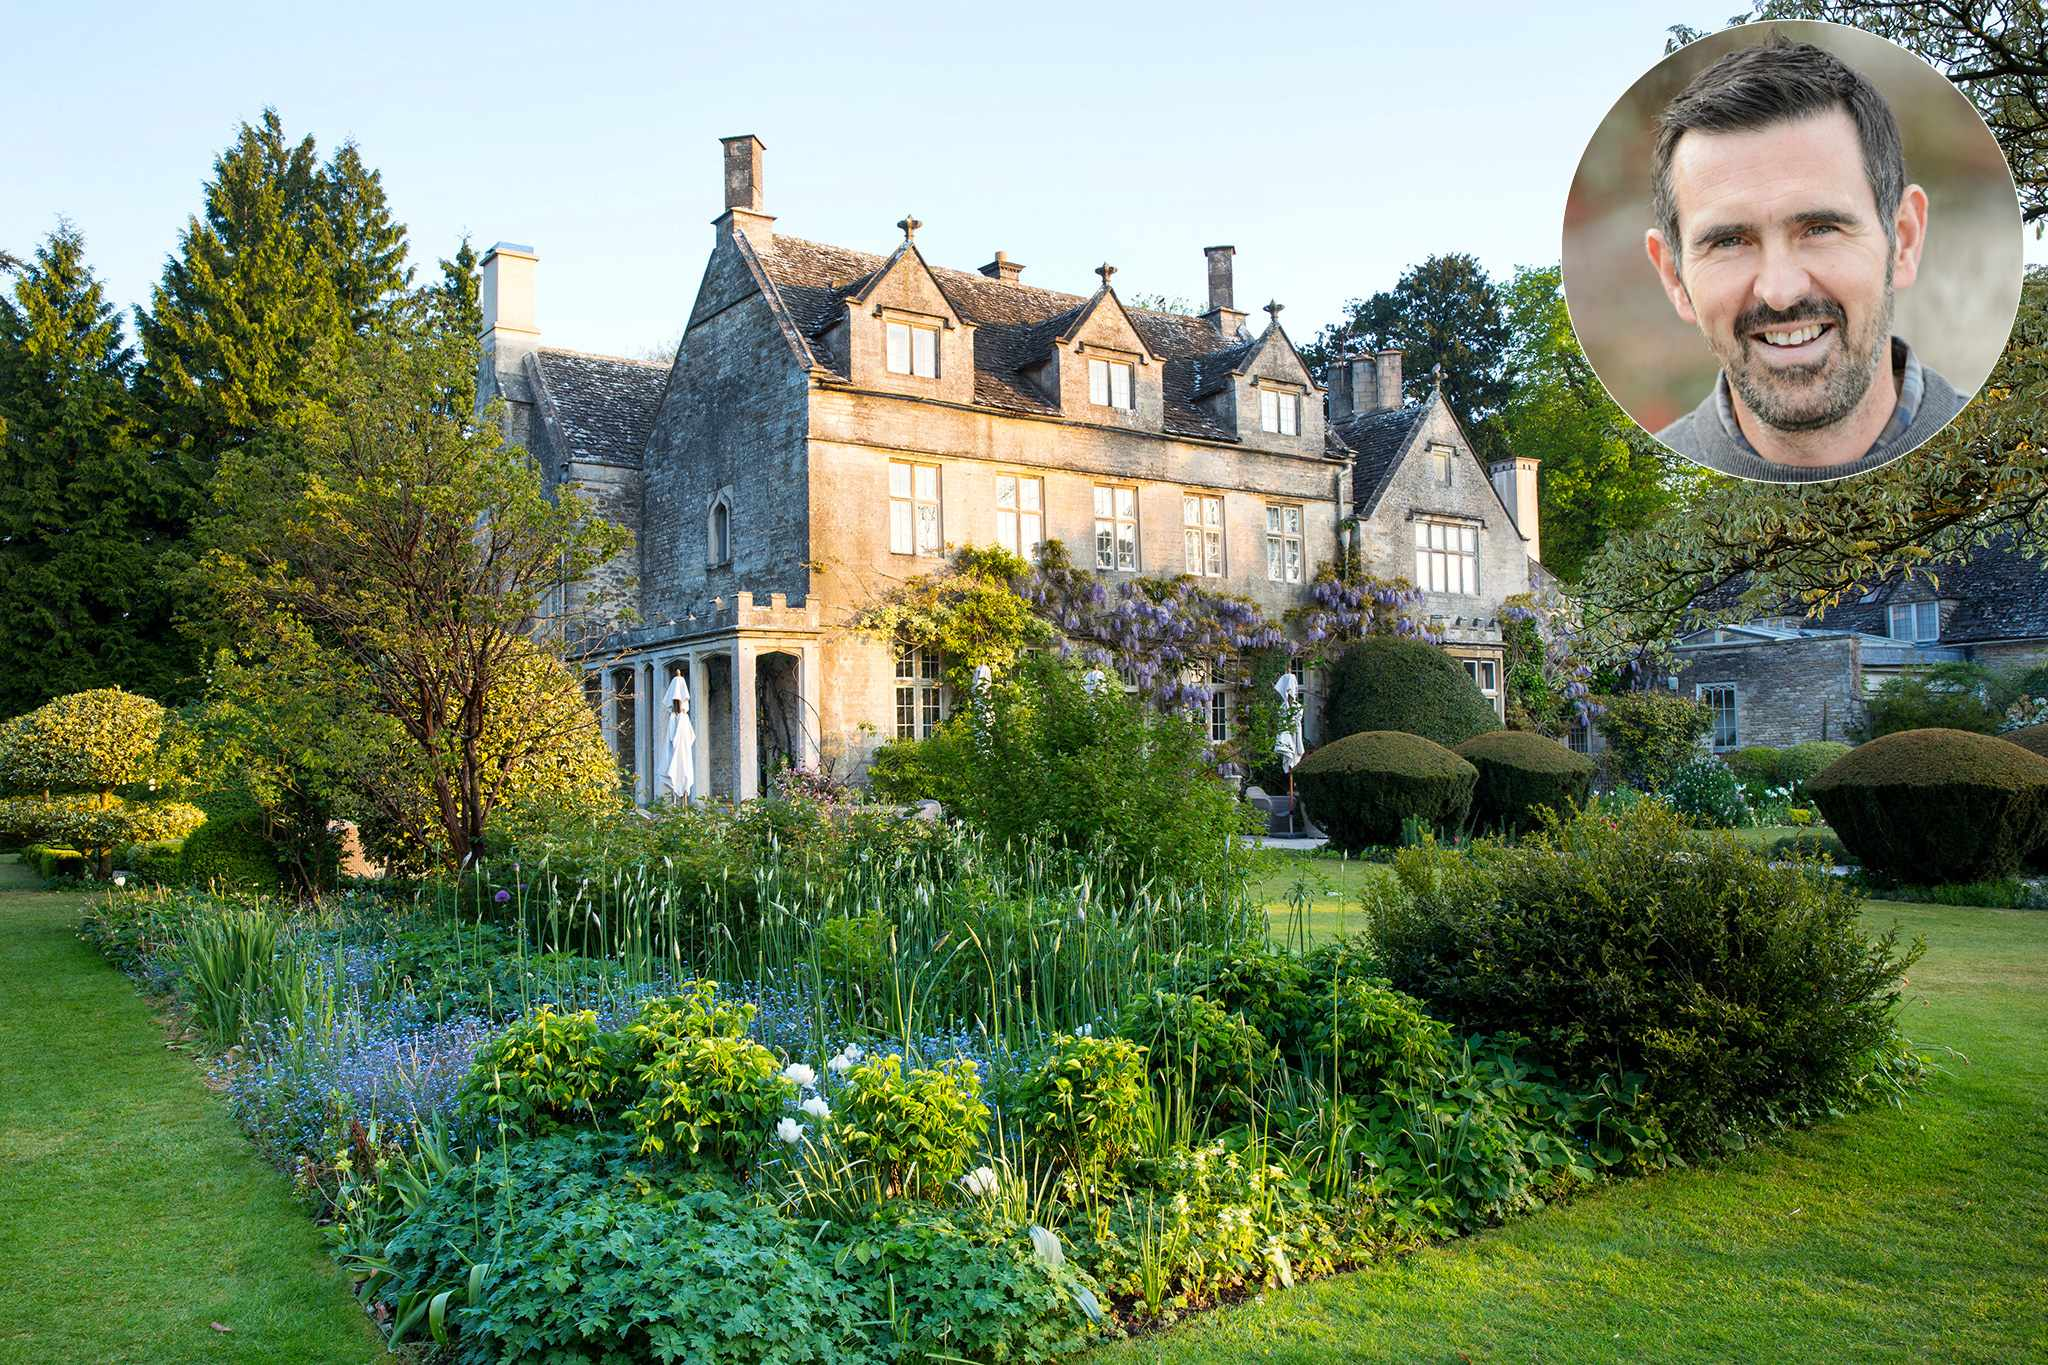 Barnsley House on Cotswolds tour